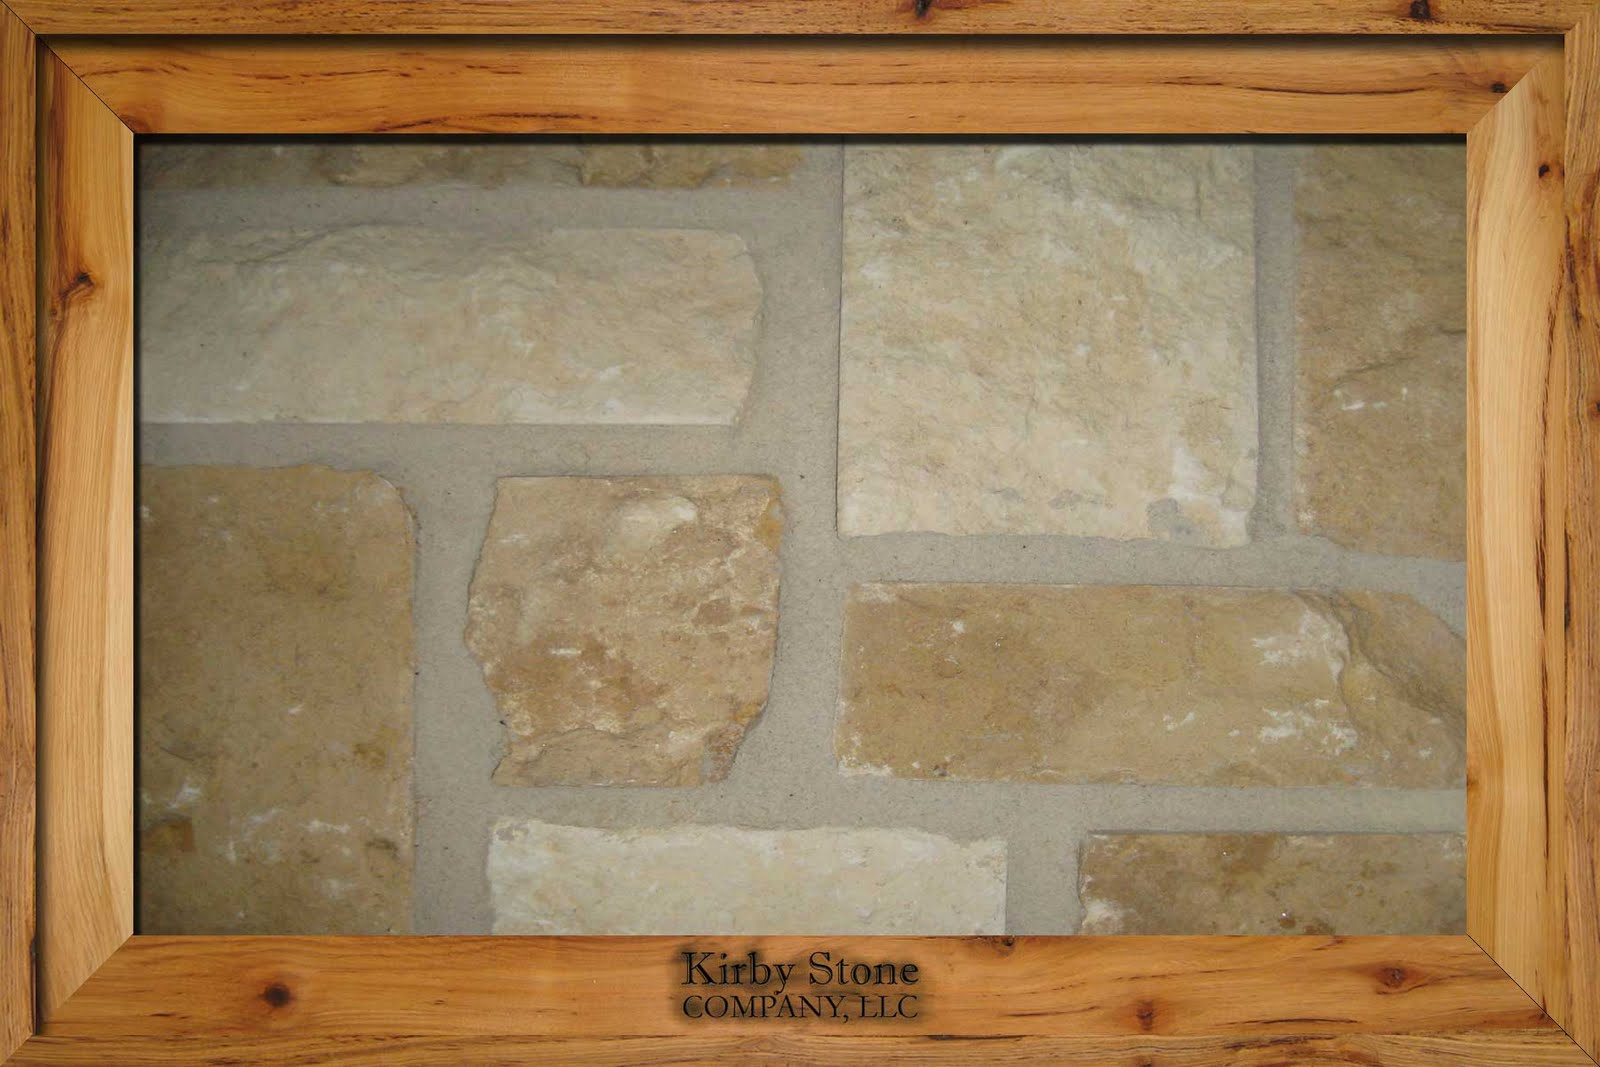 Kirby stone company llc stone showcase hill country blend for Hill country stone